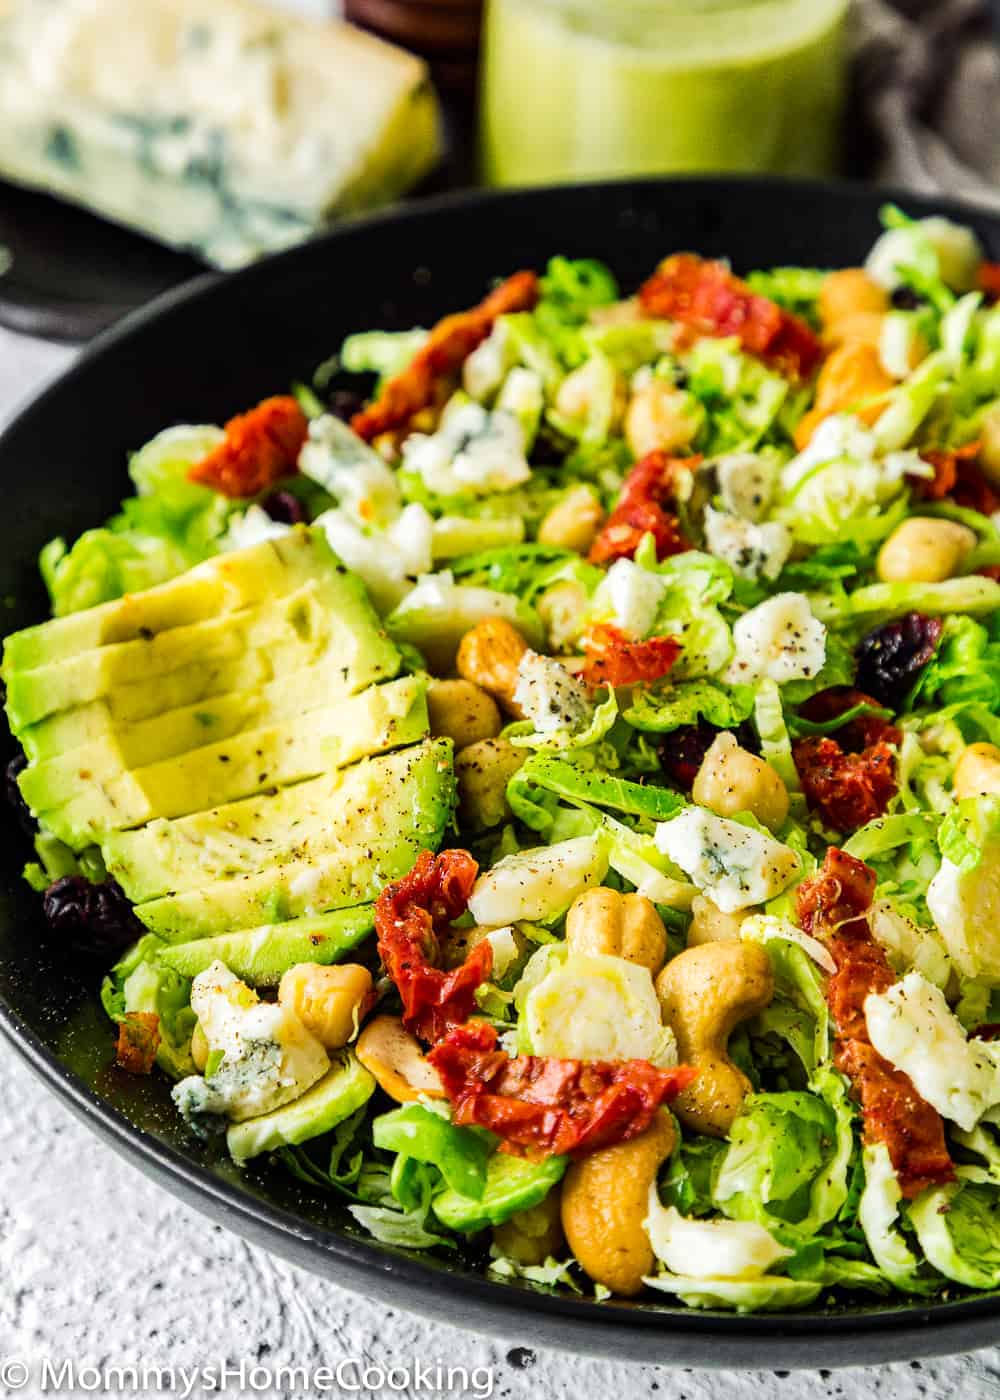 Easy Shaved Brussel Sprout Salad with Cranberries and avocado in a black bowl